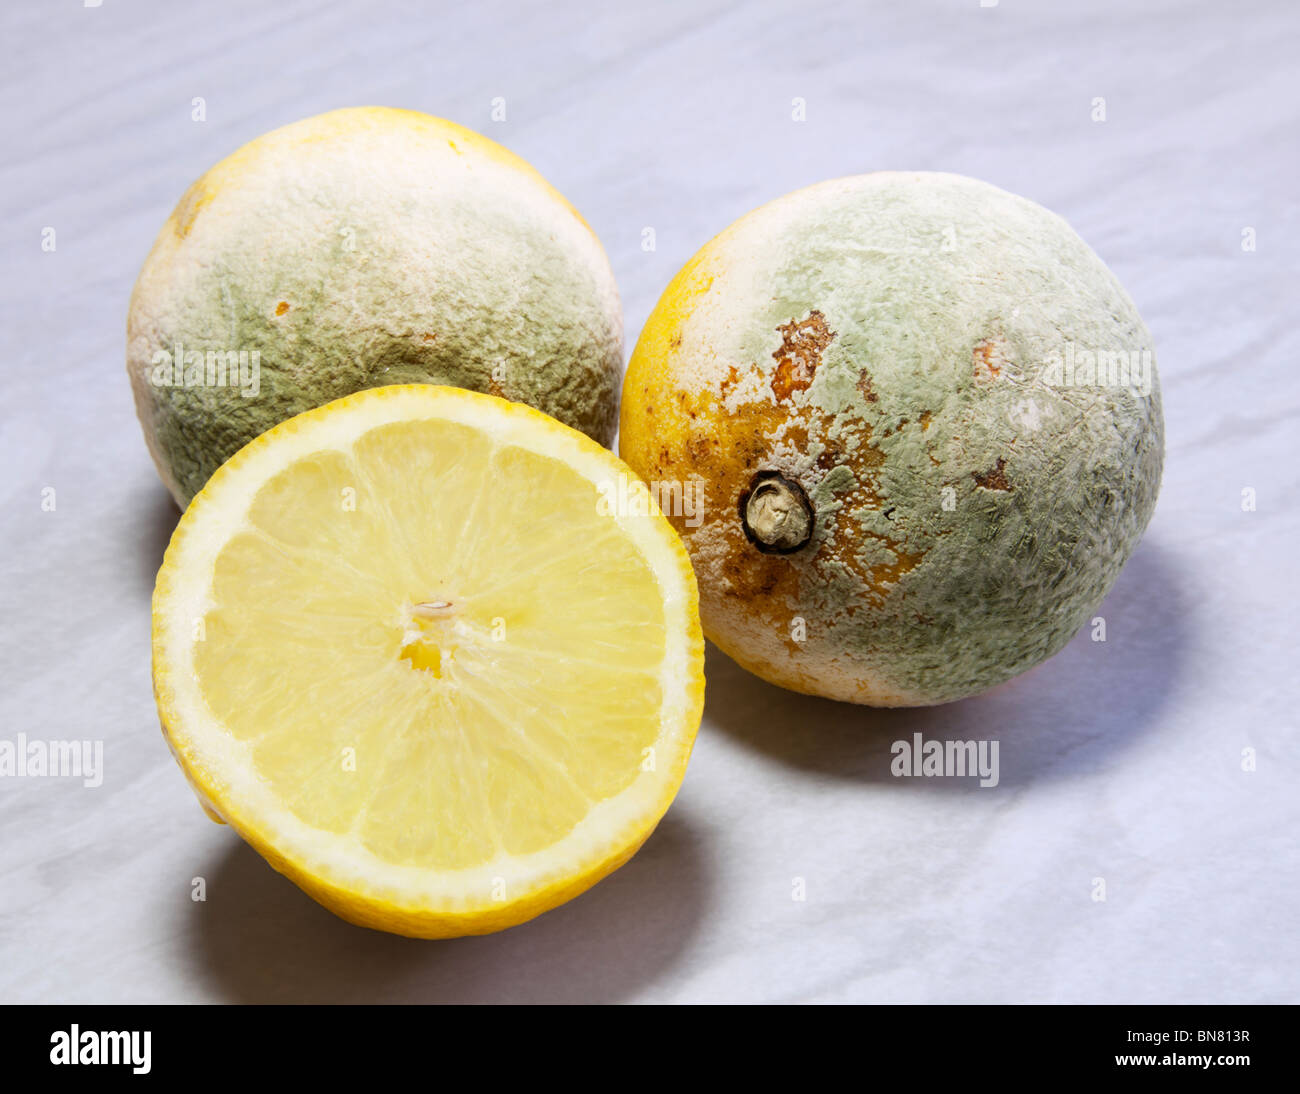 Rotten old lemons covered with green penicillium fungus mould. - Stock Image